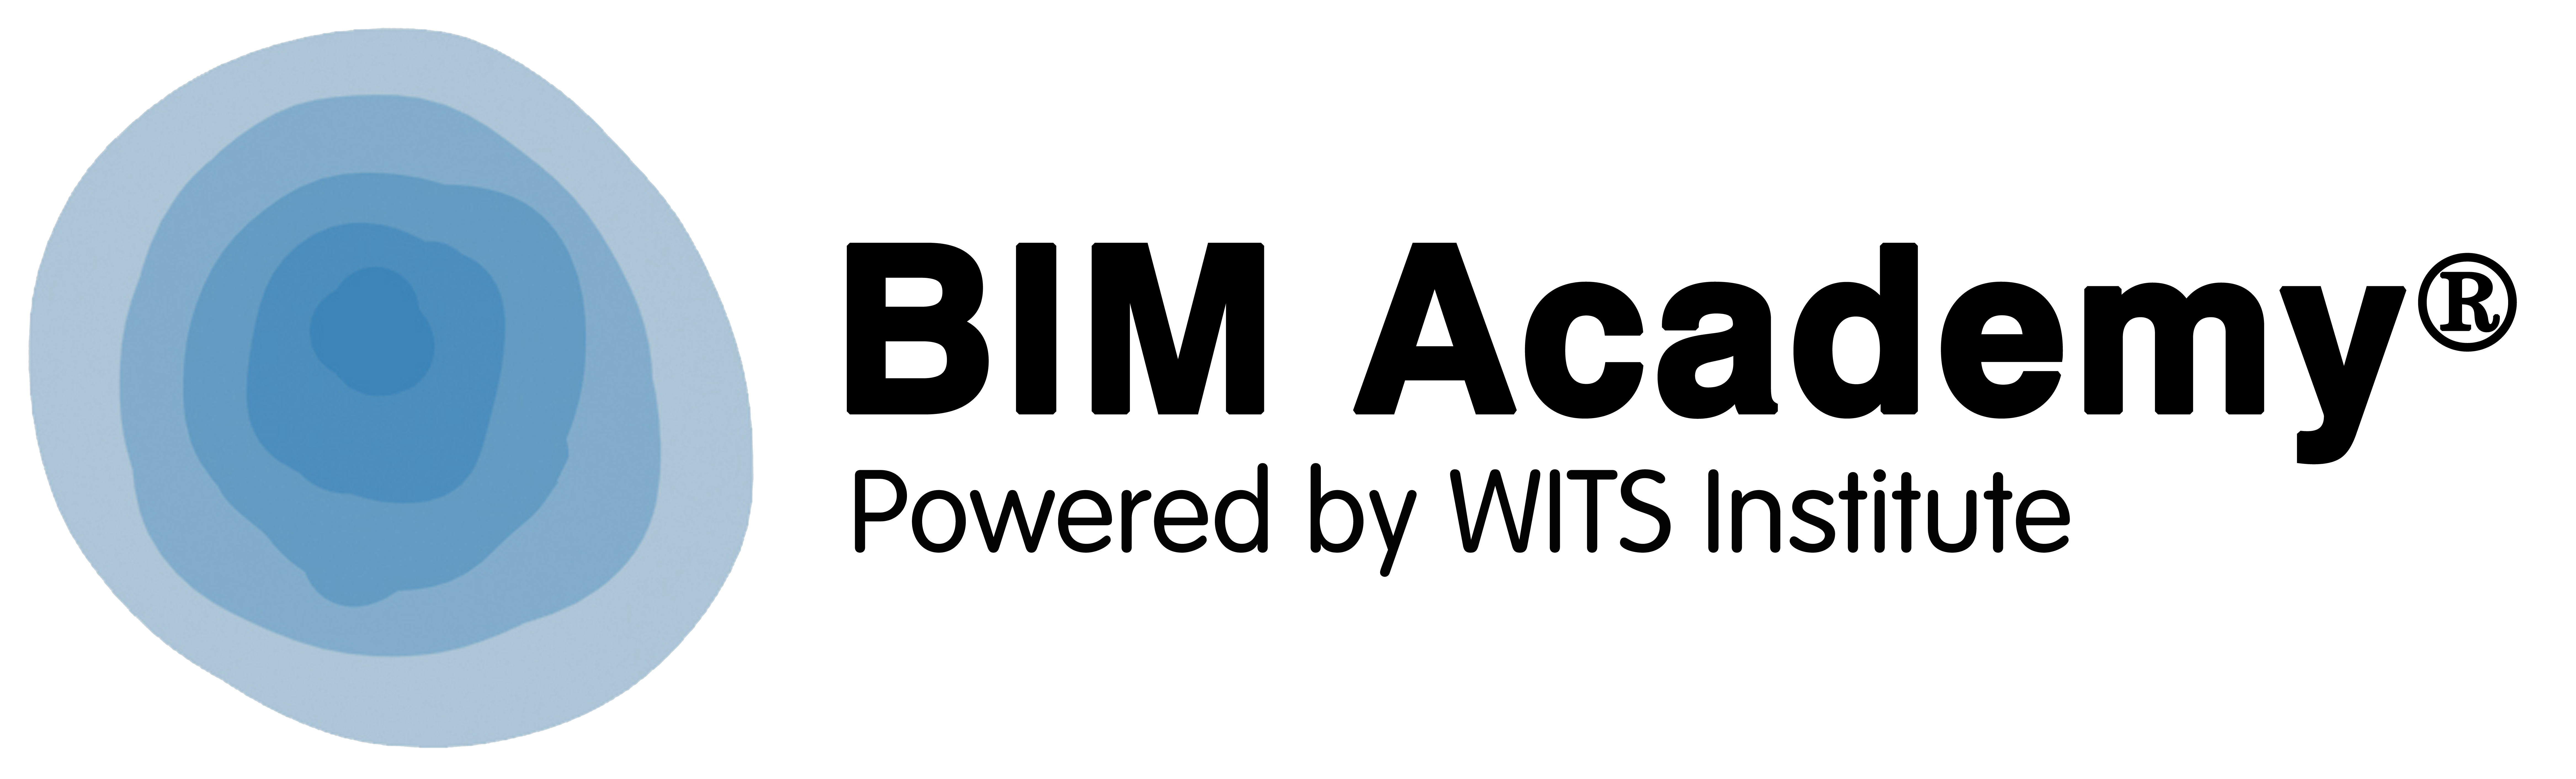 European bim summit wits institute for European bim summit